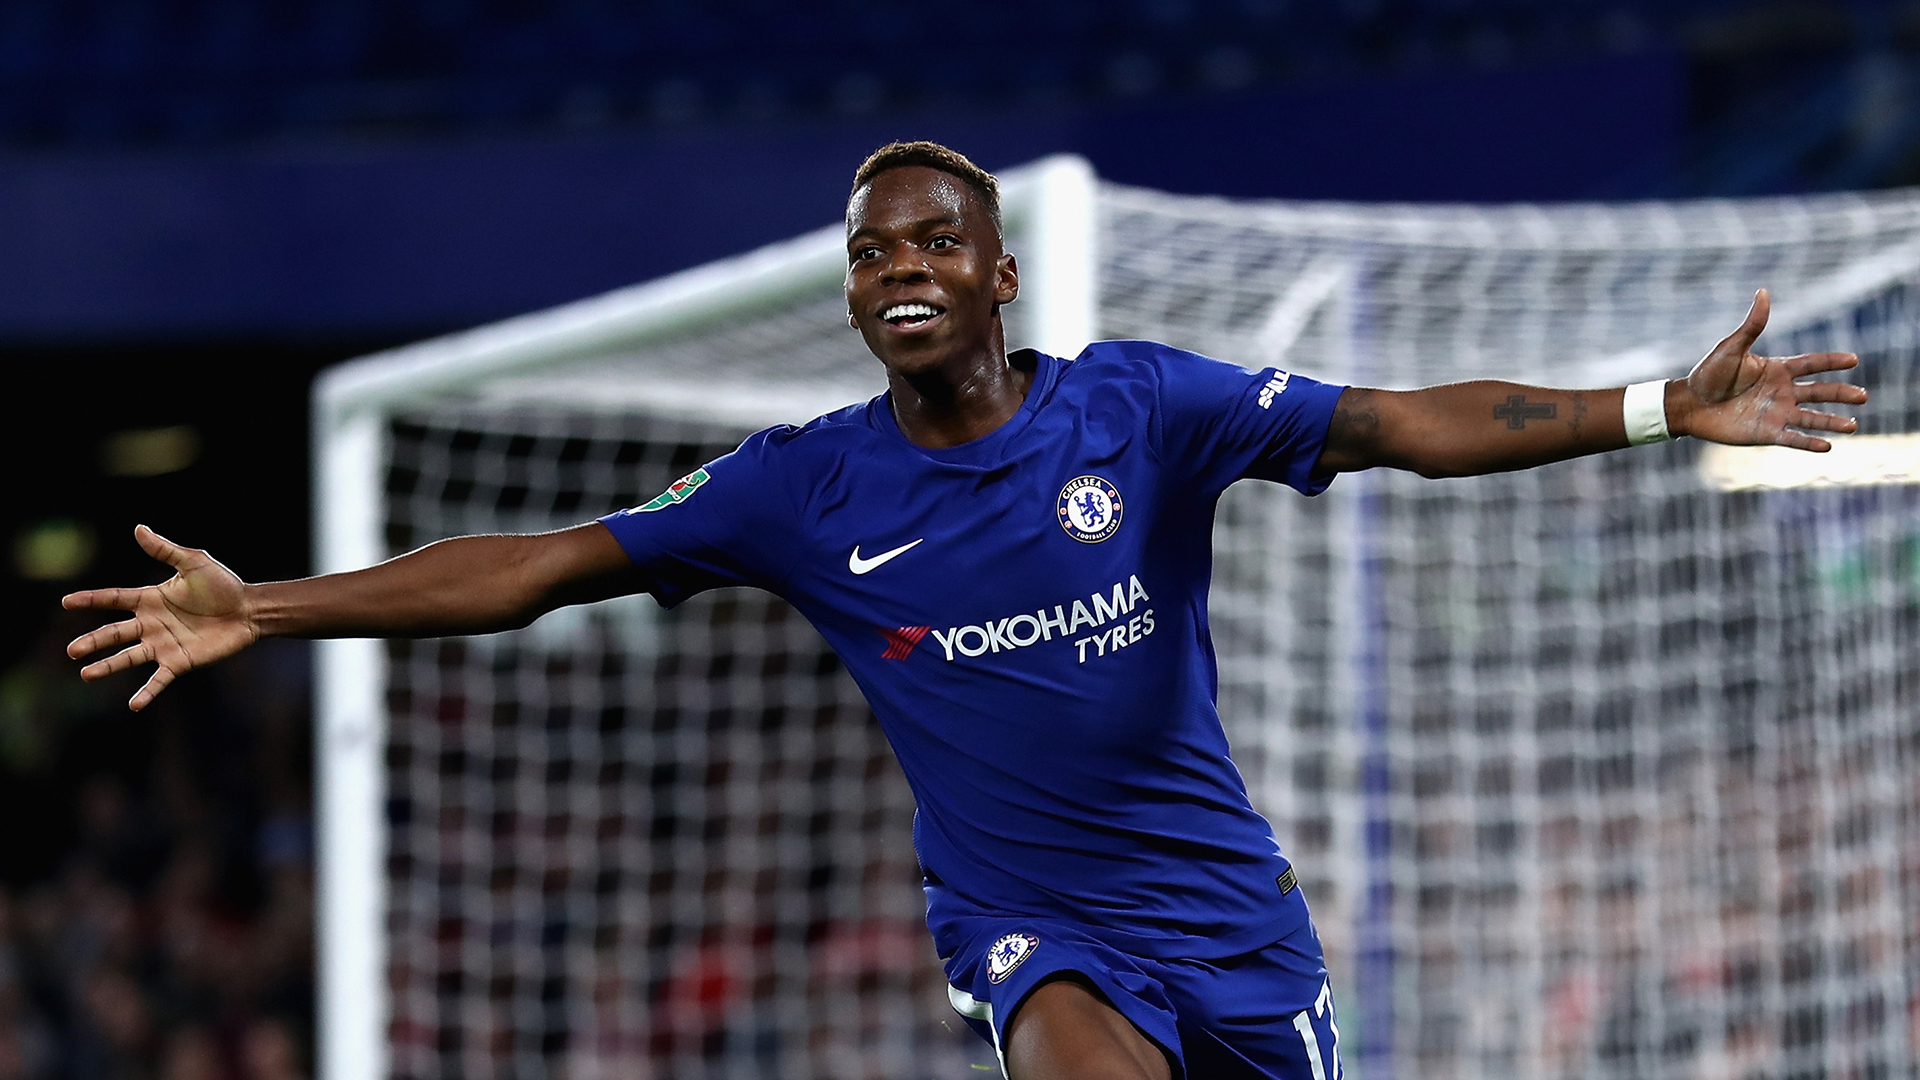 Musonda Might Be Suspended By Chelsea After Instagram Controversy